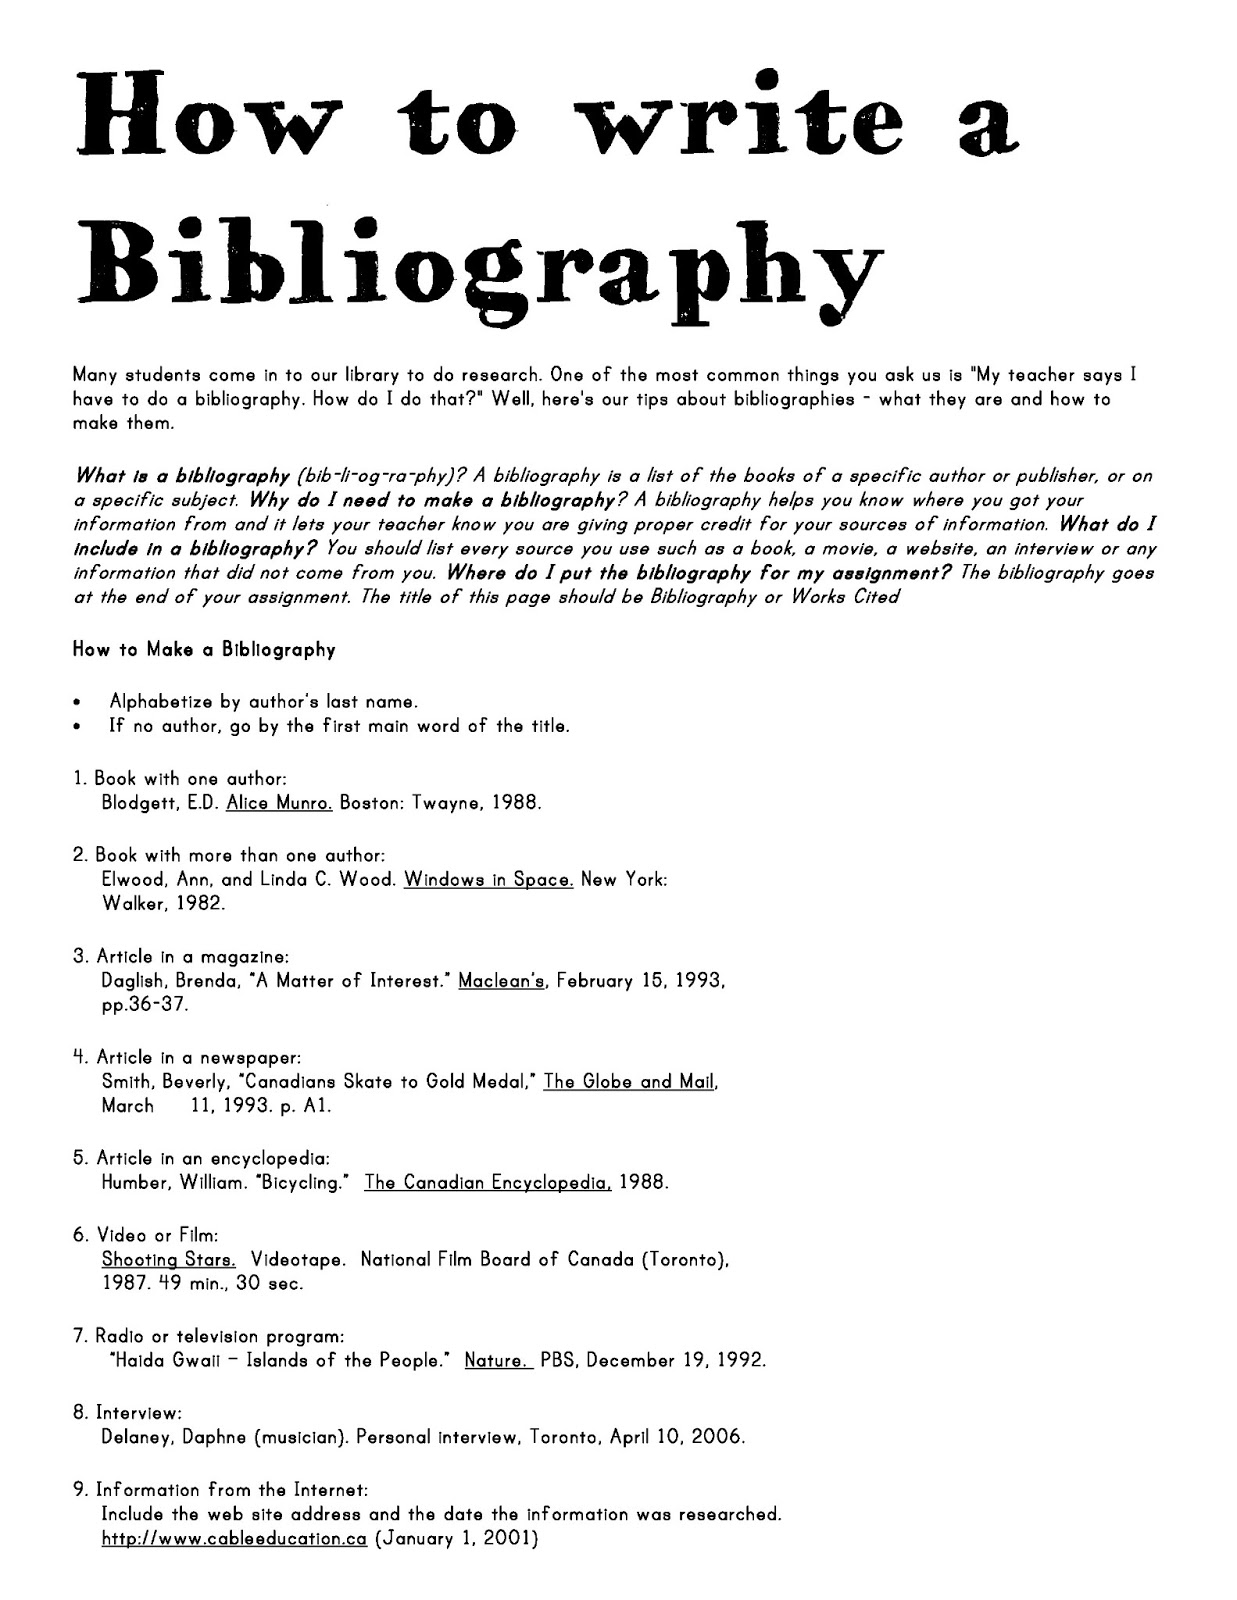 Accurate annotated bibliography for research paper writing.